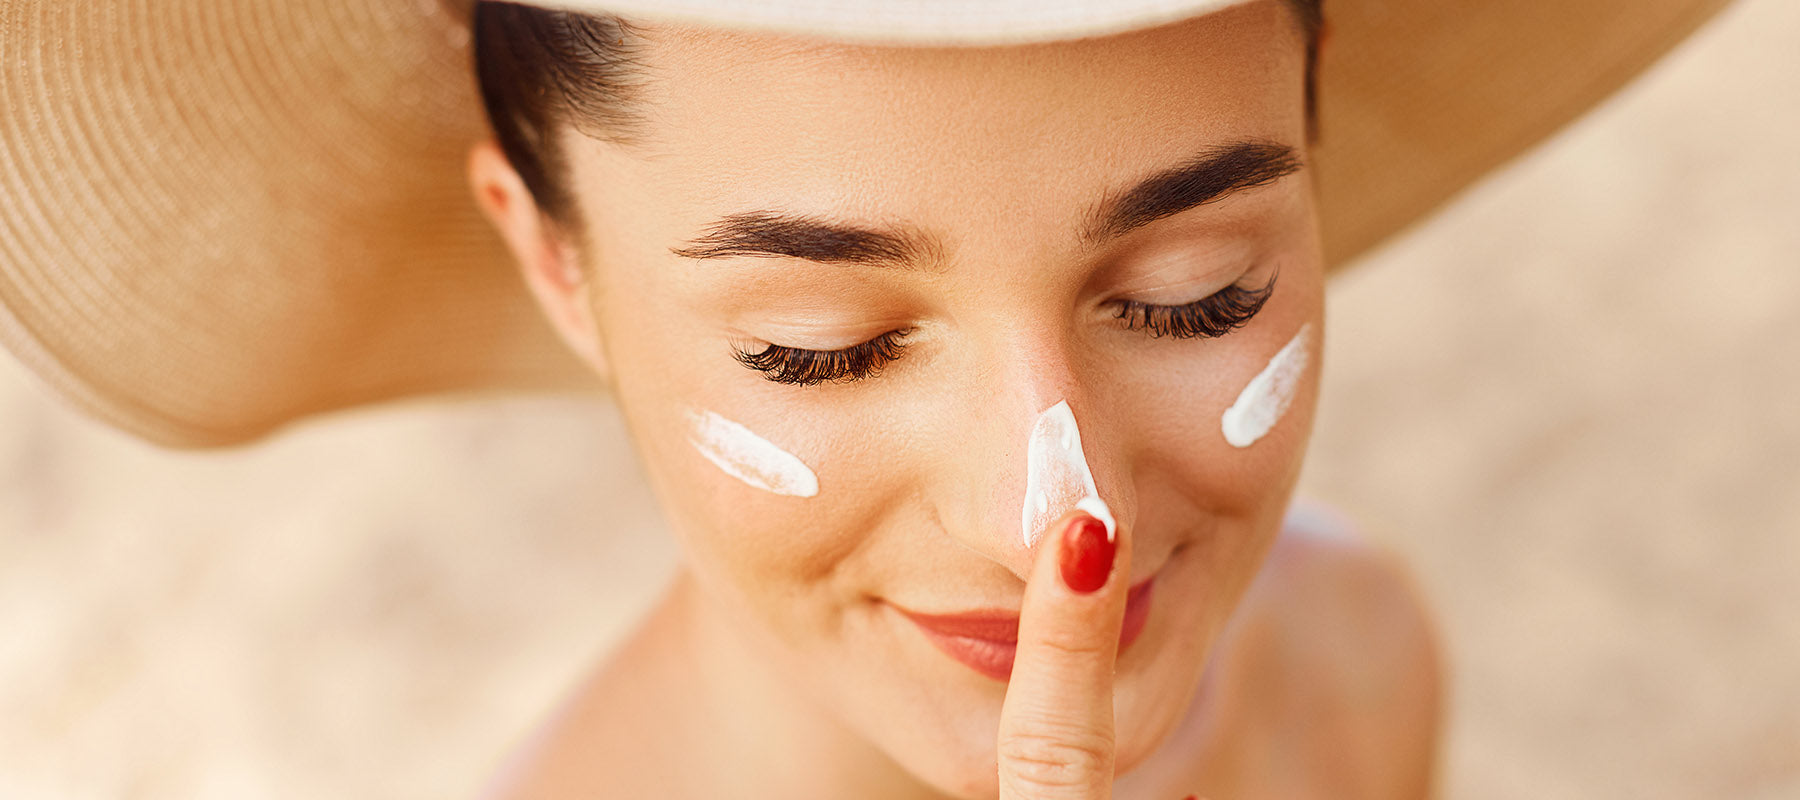 Useful Tips to Choose the Best Skin Care Products